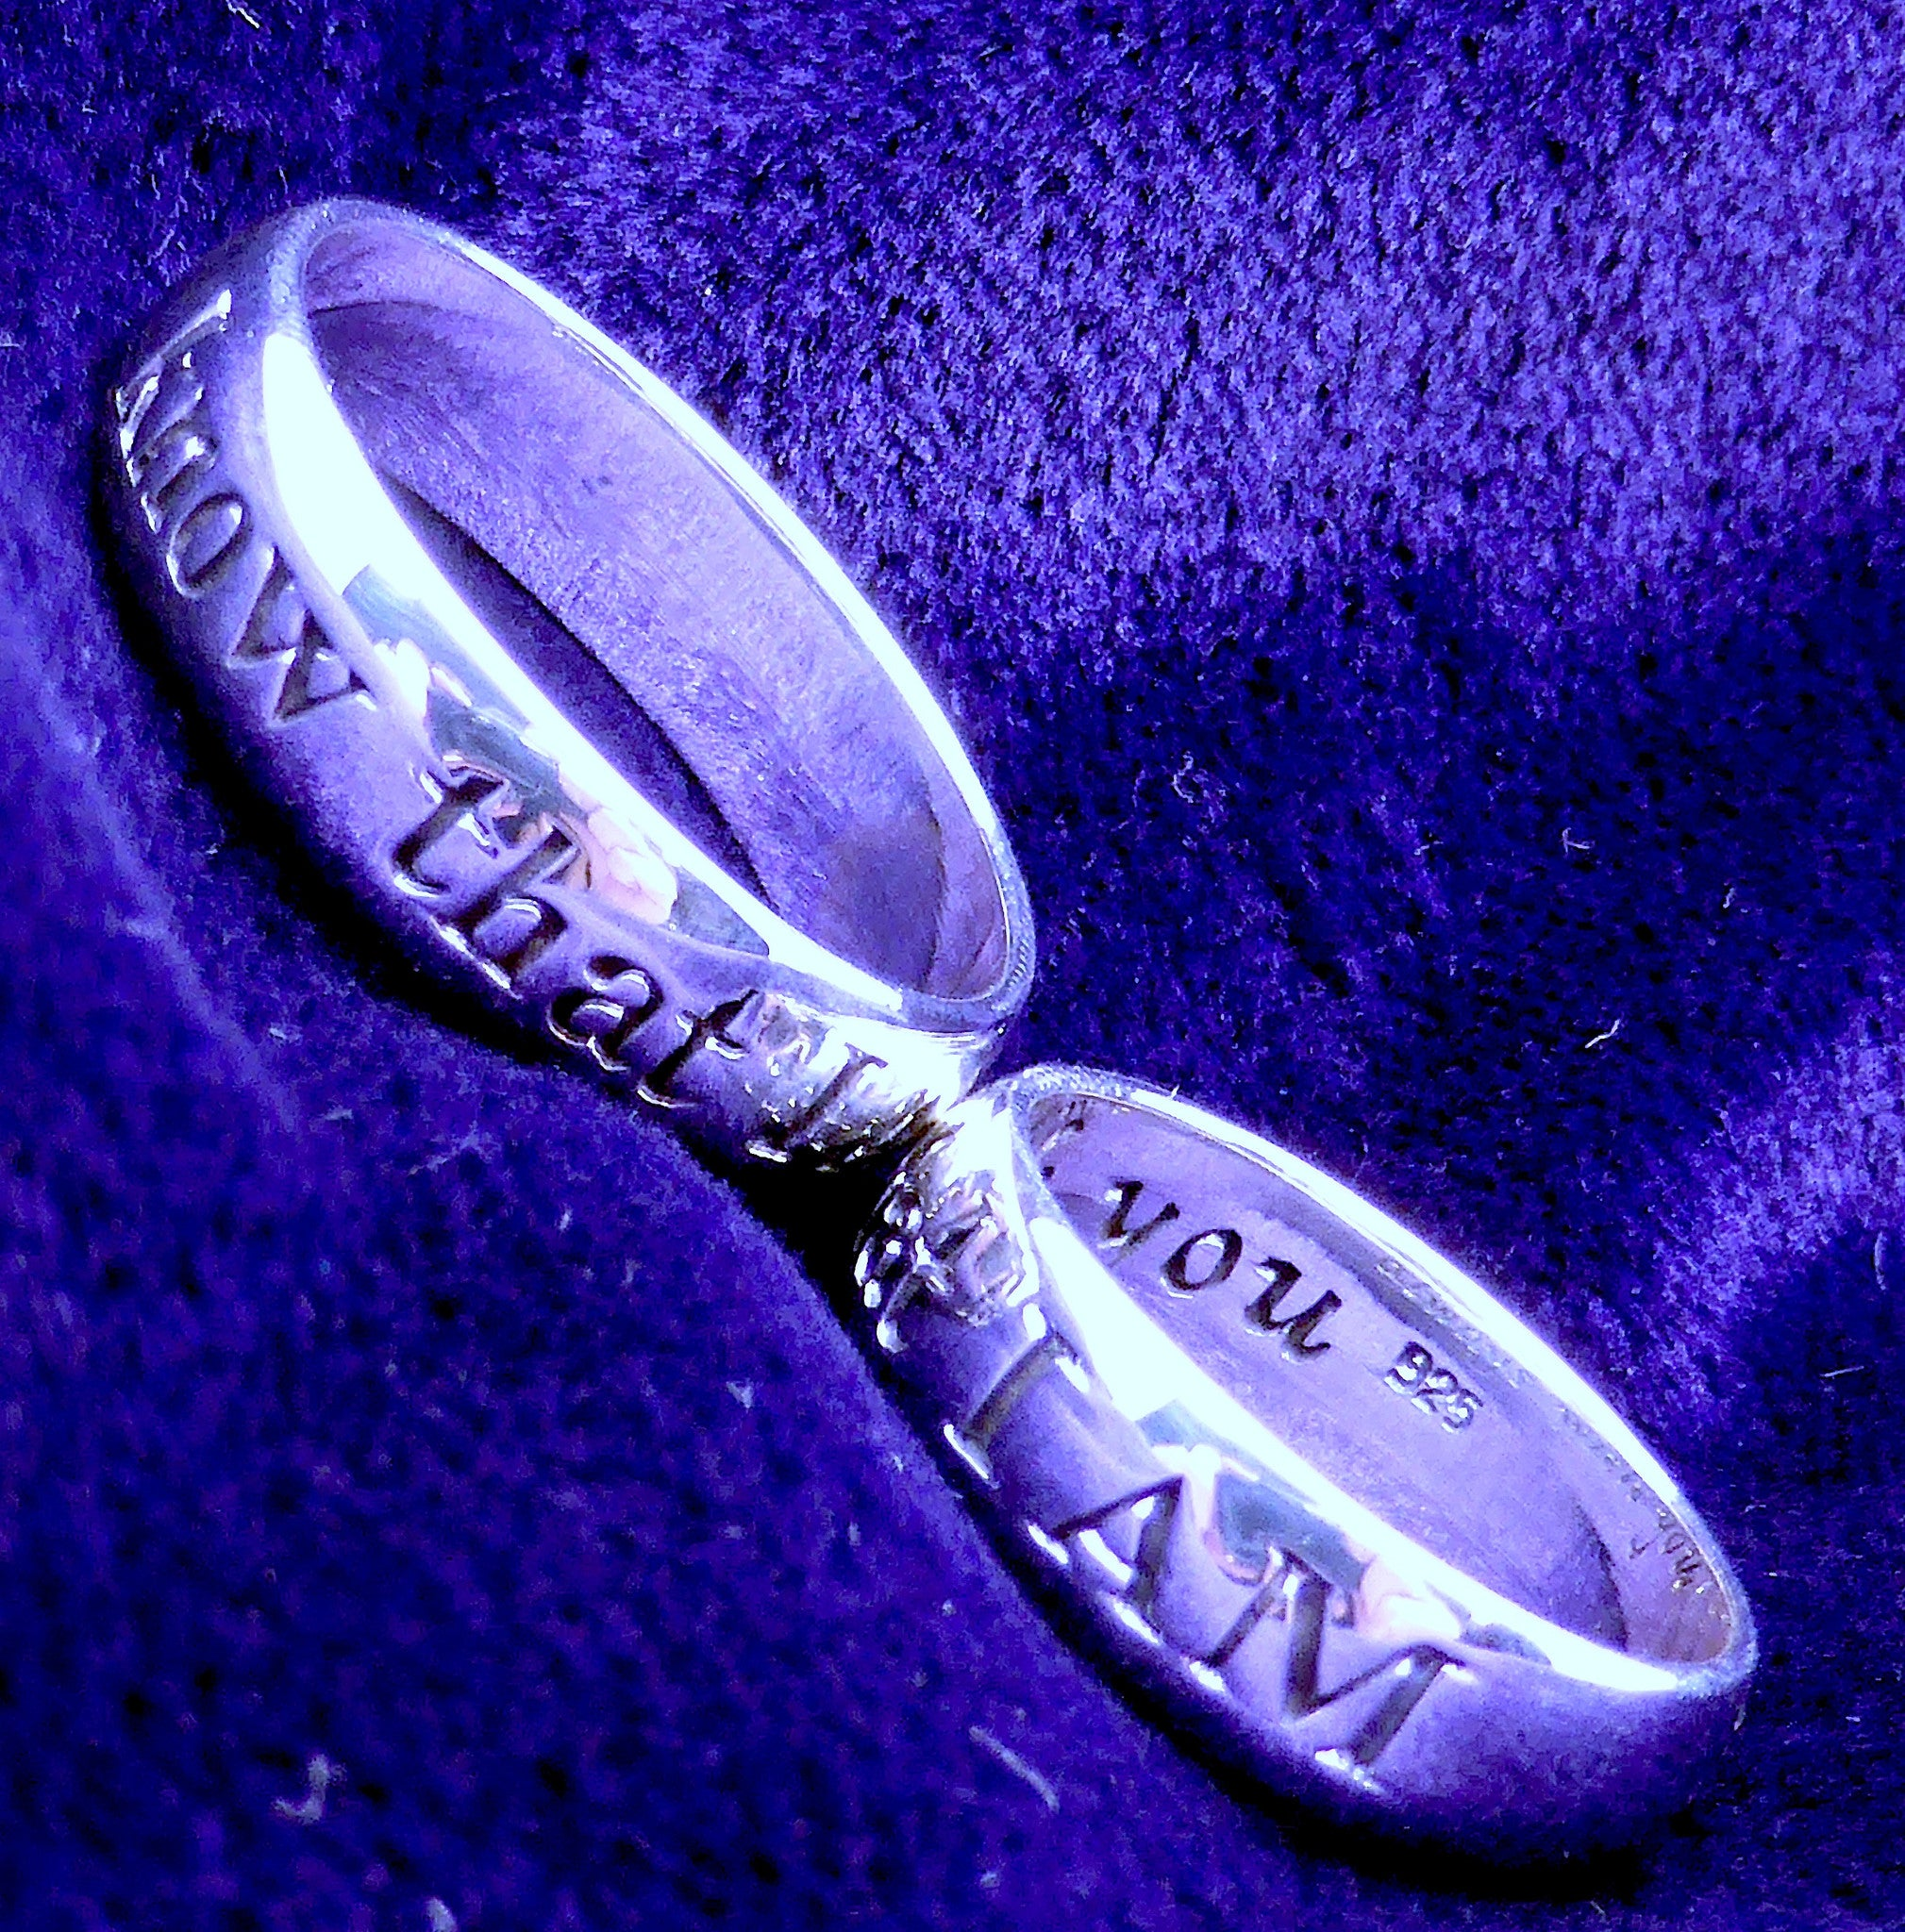 925 Sterling Silver Ring | Imagine | Know that I am | always with you | Spiritual Affirmation Partner Ring | Australian Supplier | Melbourne Australia